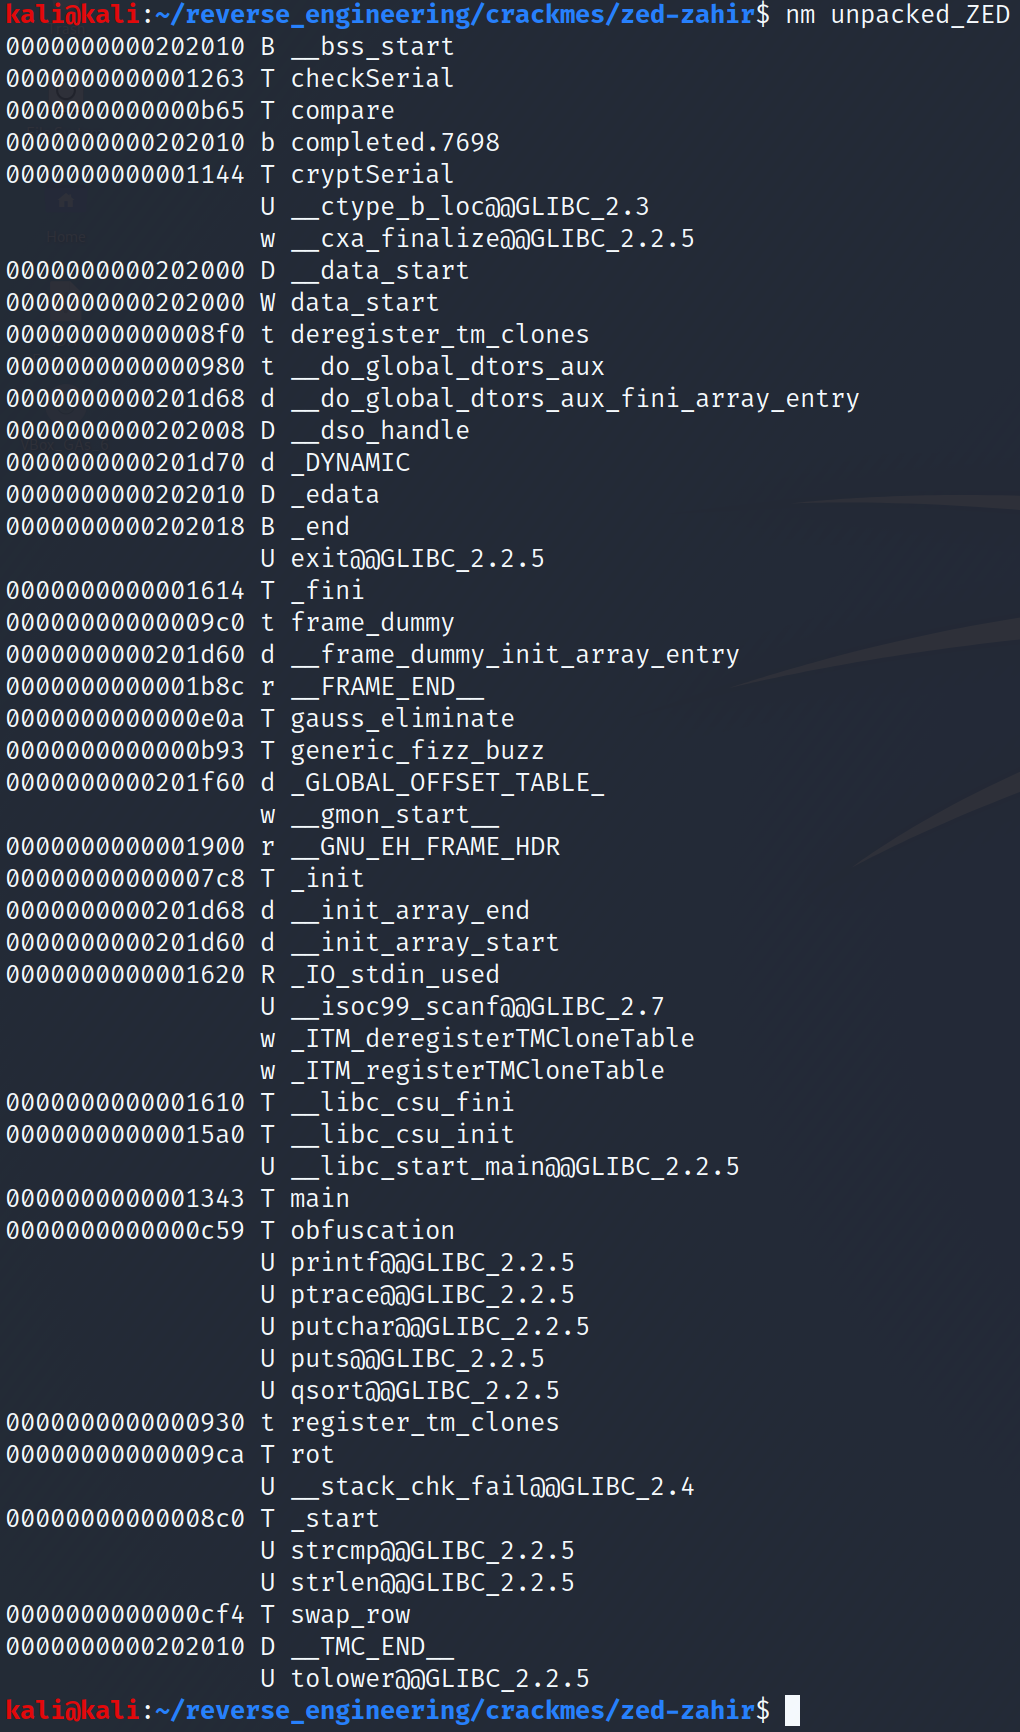 Output of the nm command on our unpacked binary